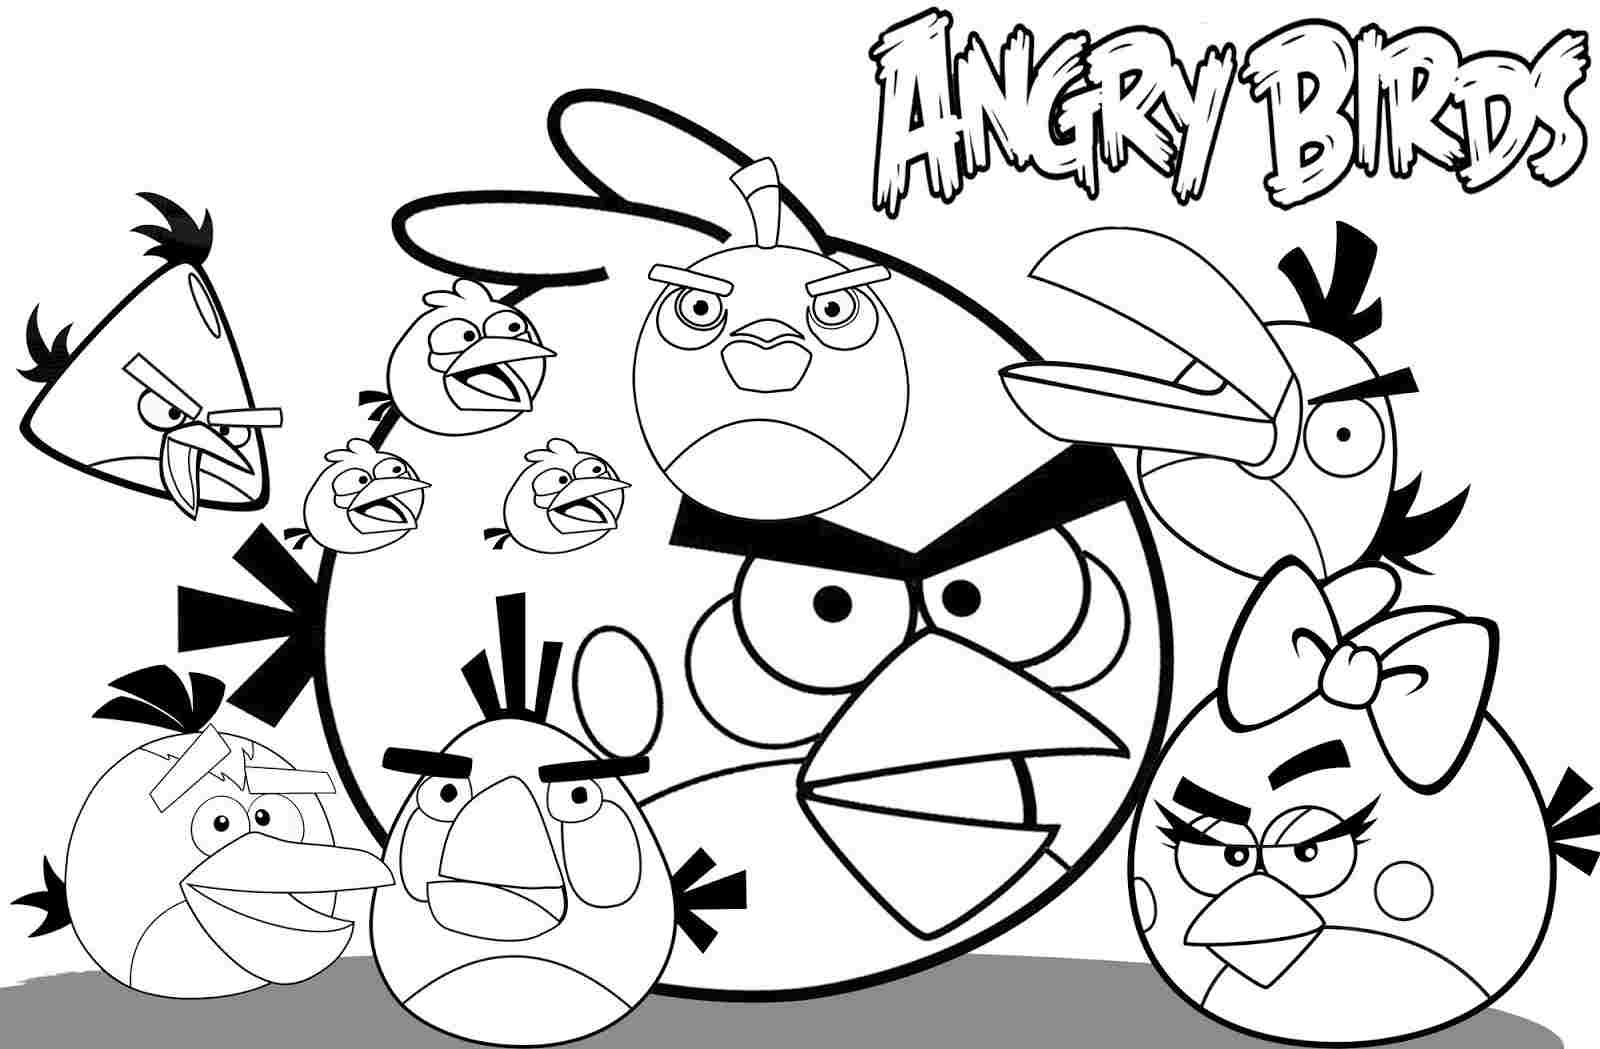 angry birds printable coloring pages angry birds colouring pages that you can use as templates coloring pages printable angry birds